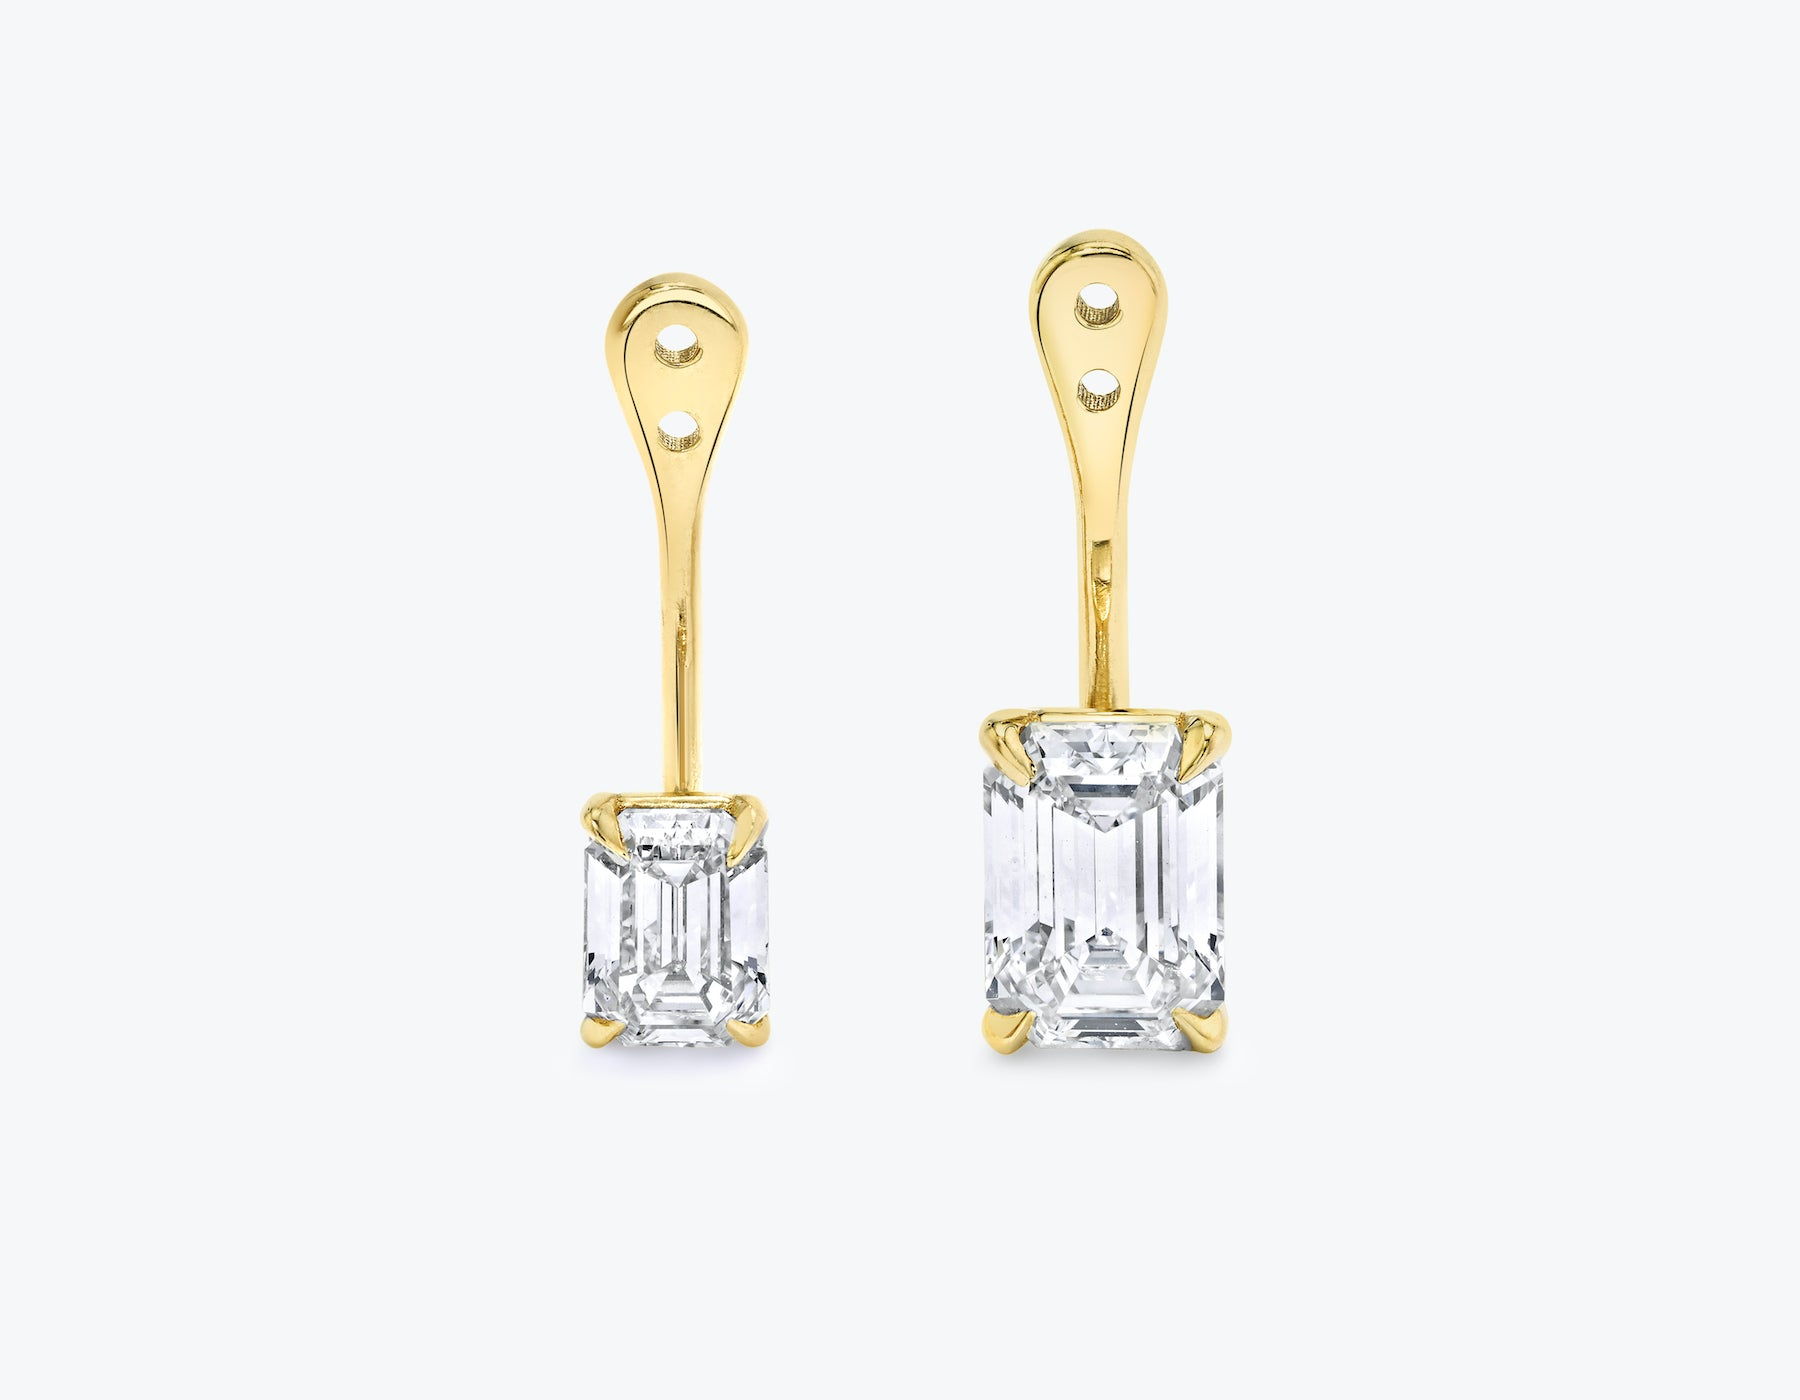 Vrai solitaire emerald diamond drop ear jackets made in 14k solid gold with sustainably created diamonds, 14K Yellow Gold